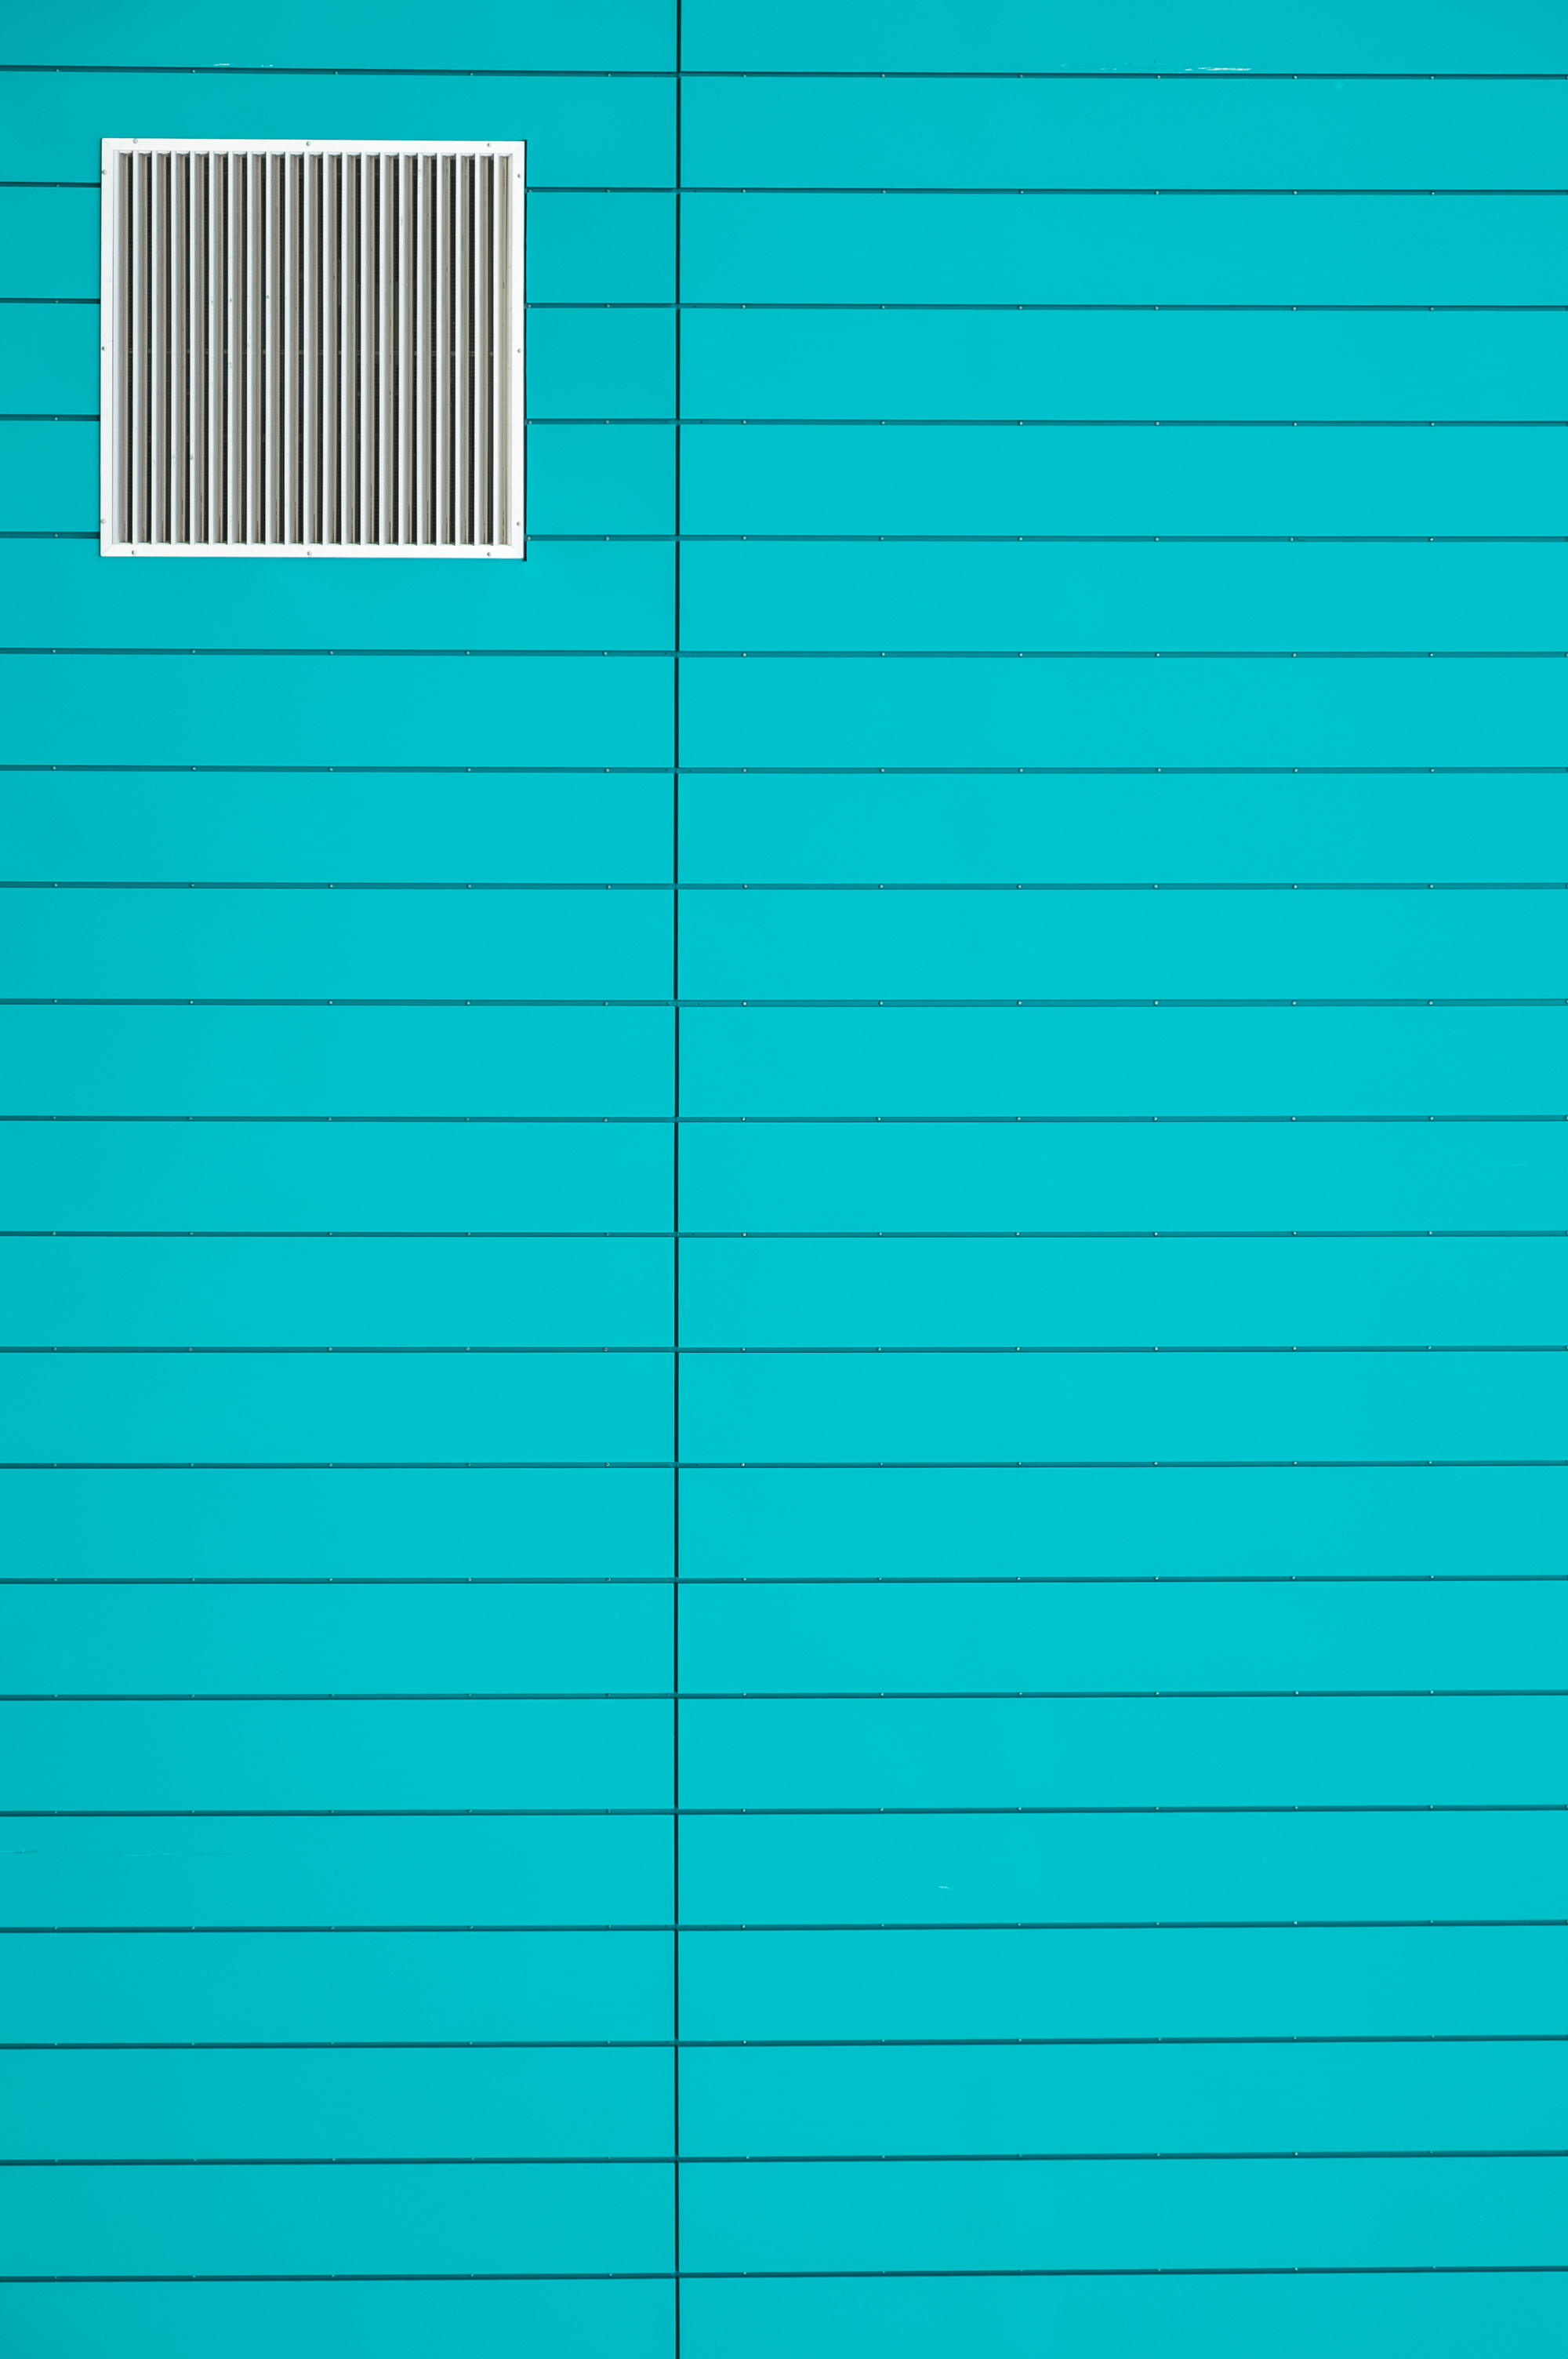 Gallery of 20 photos selected as winners of eyeem 39 s for Minimalist architecture photography